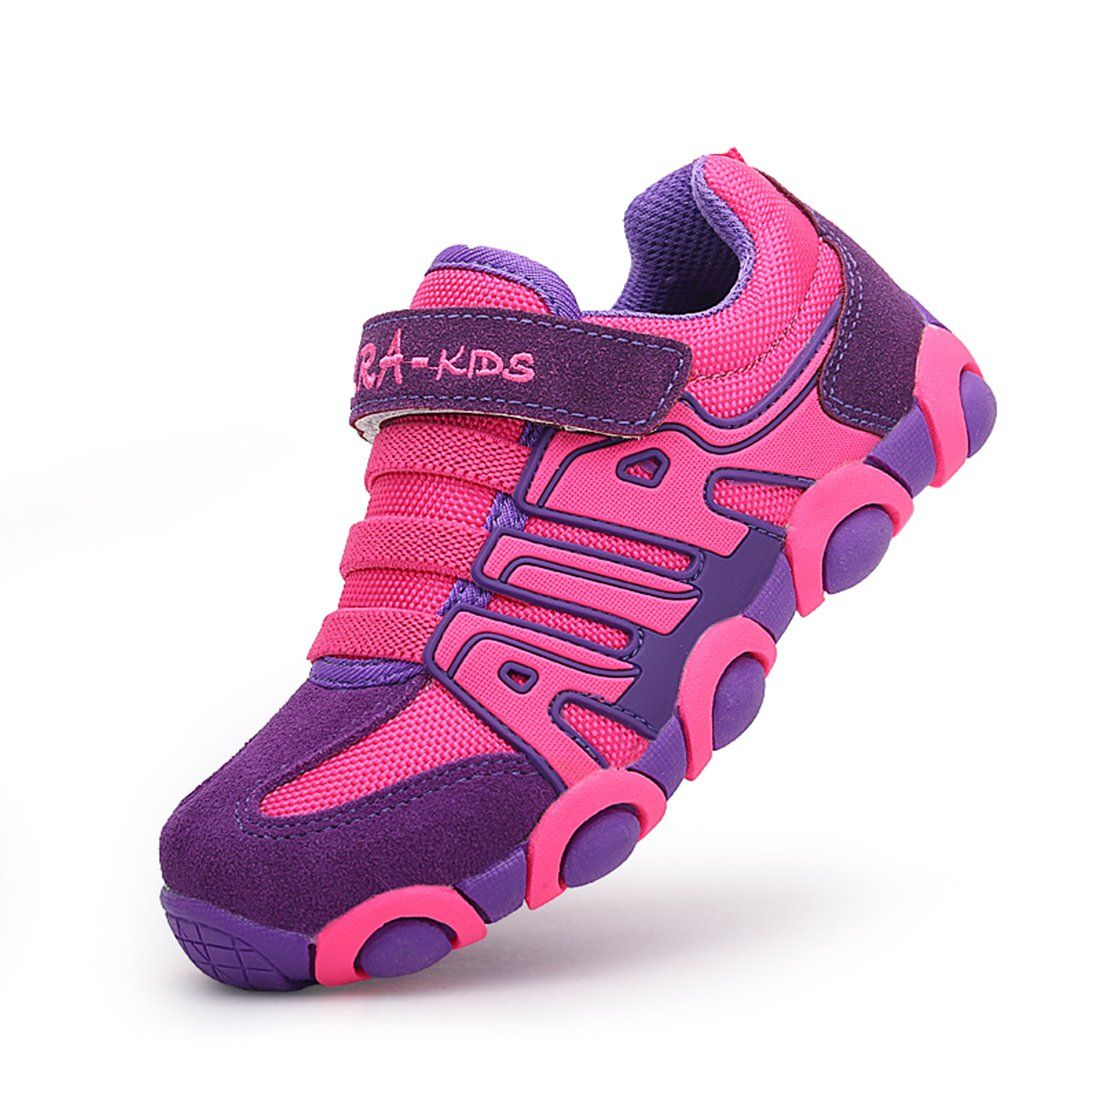 0c034aa26944f1 O N Boys Girls Athletic Sneakers Mesh Velcro Lightweight Sport Casual Running  Shoes for Kids Rose 12.5